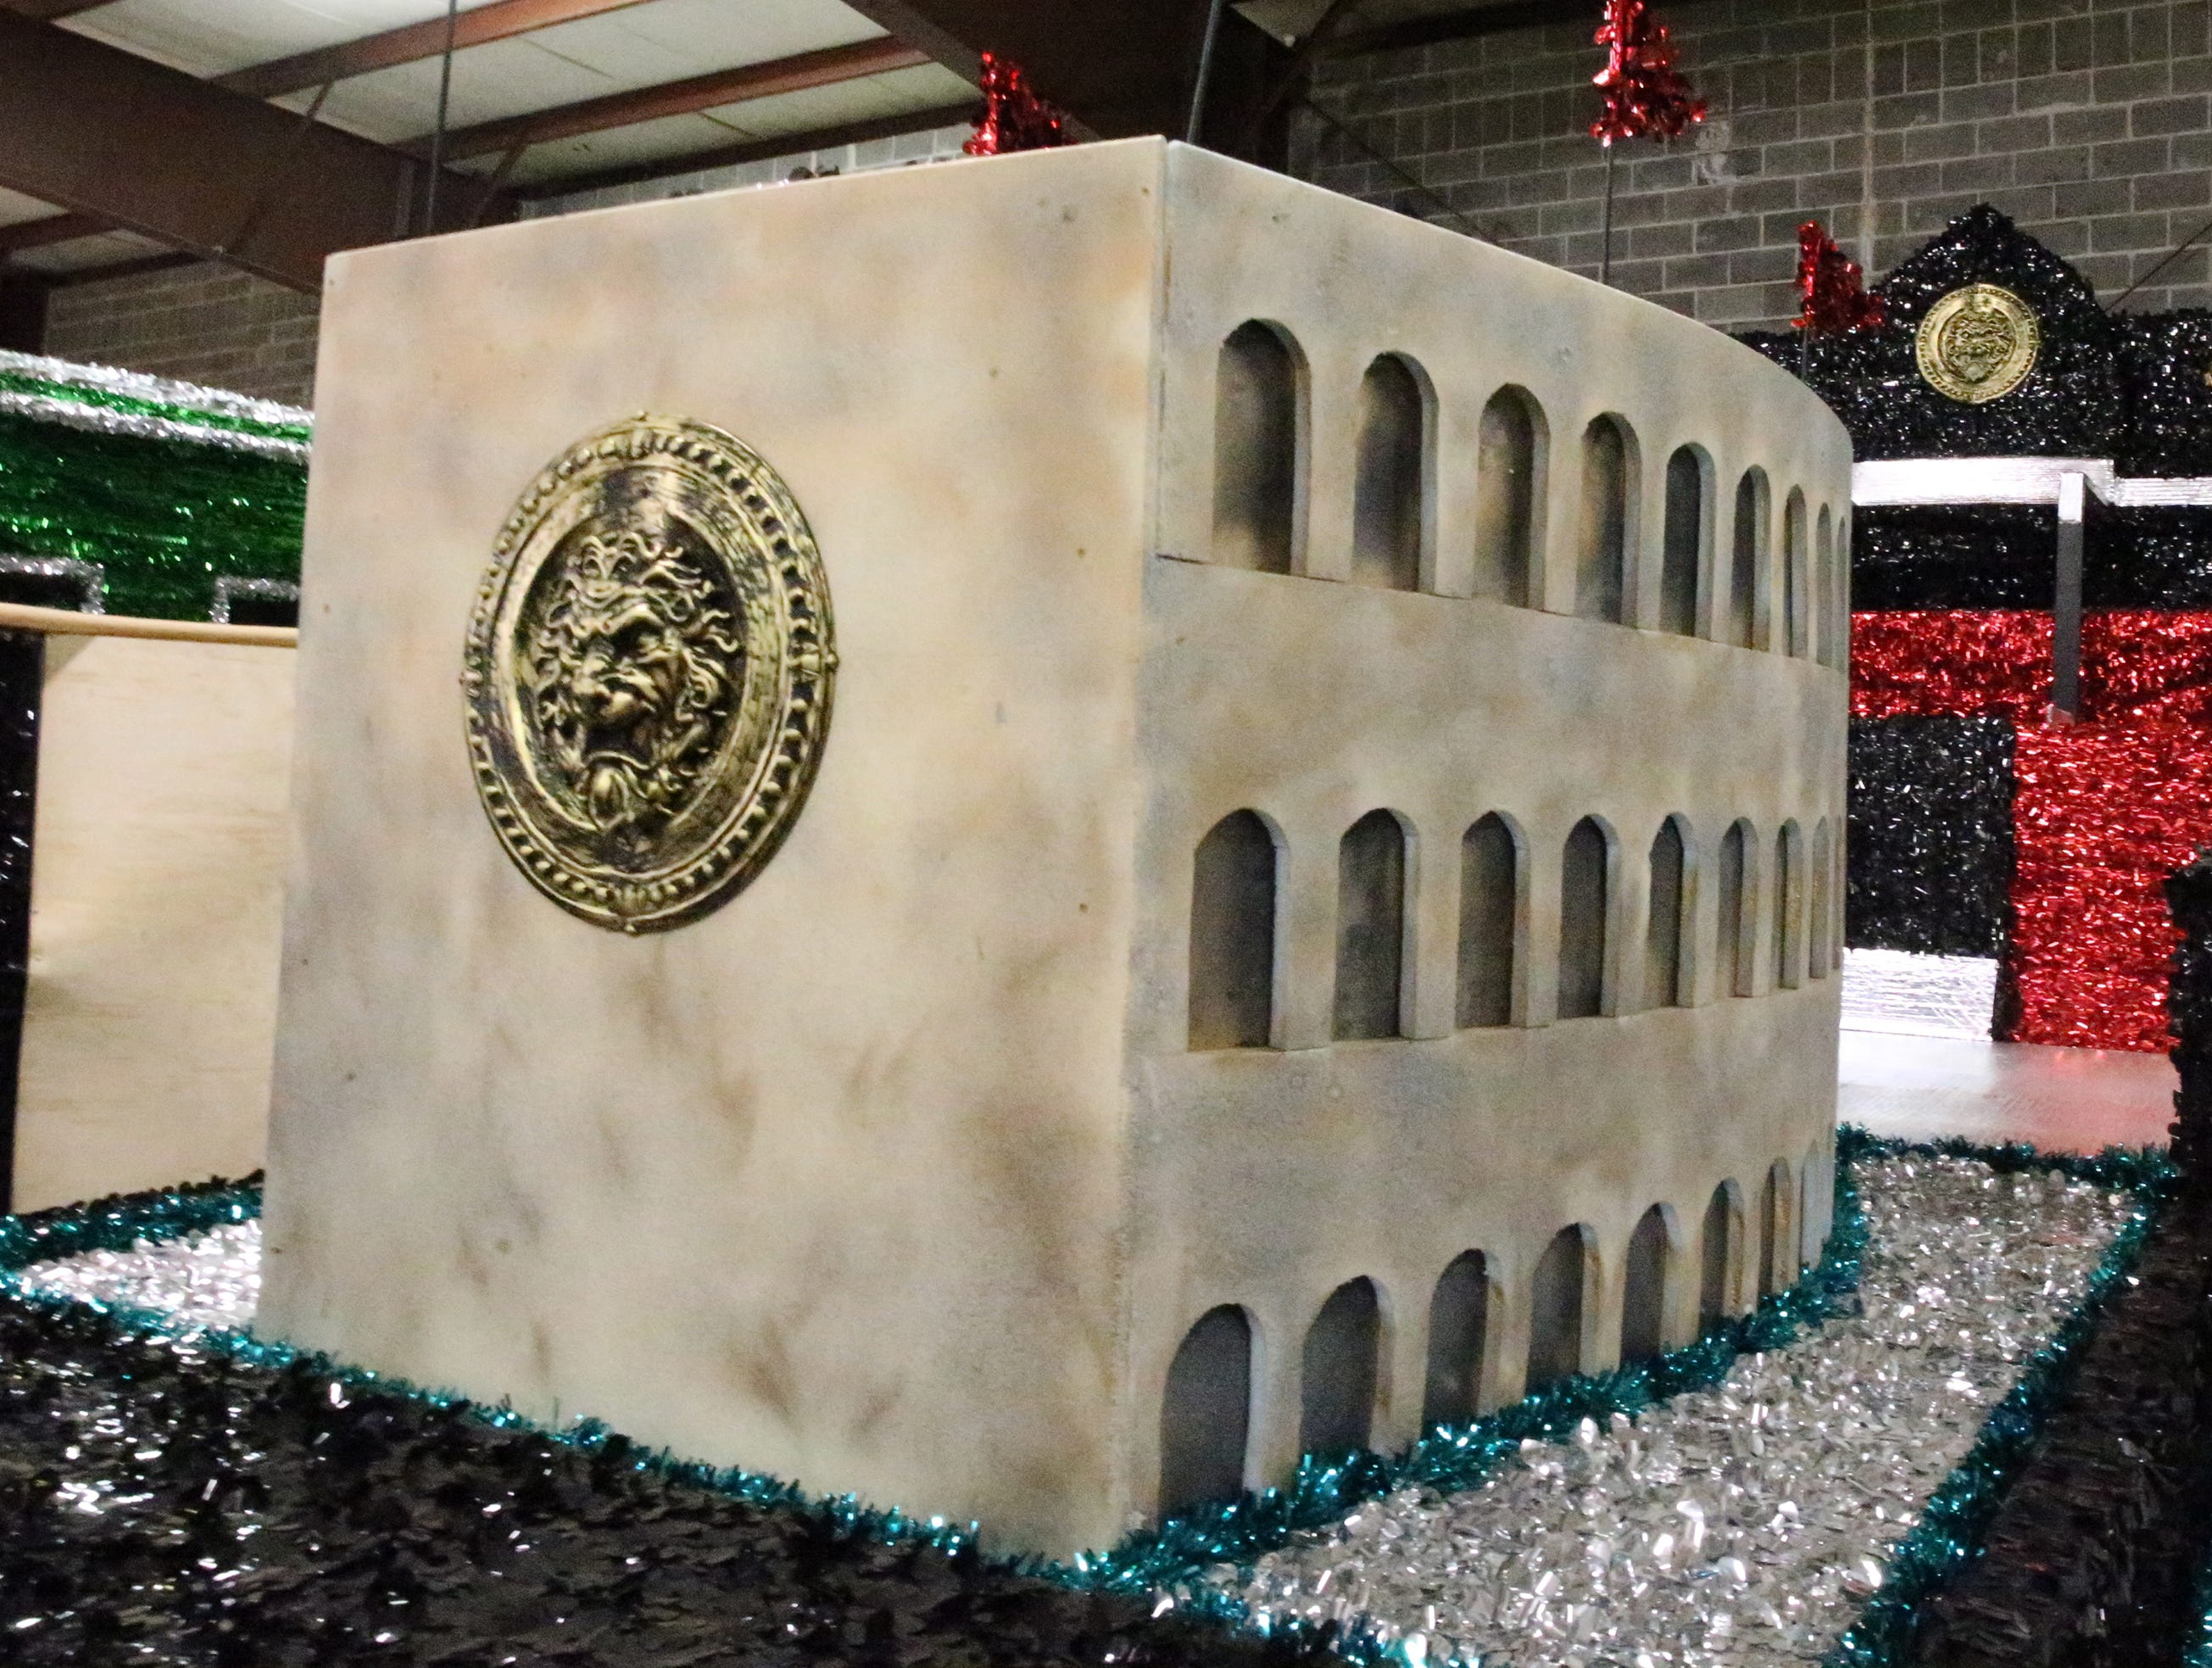 The Roman Coliseum is depicted in a parade float.